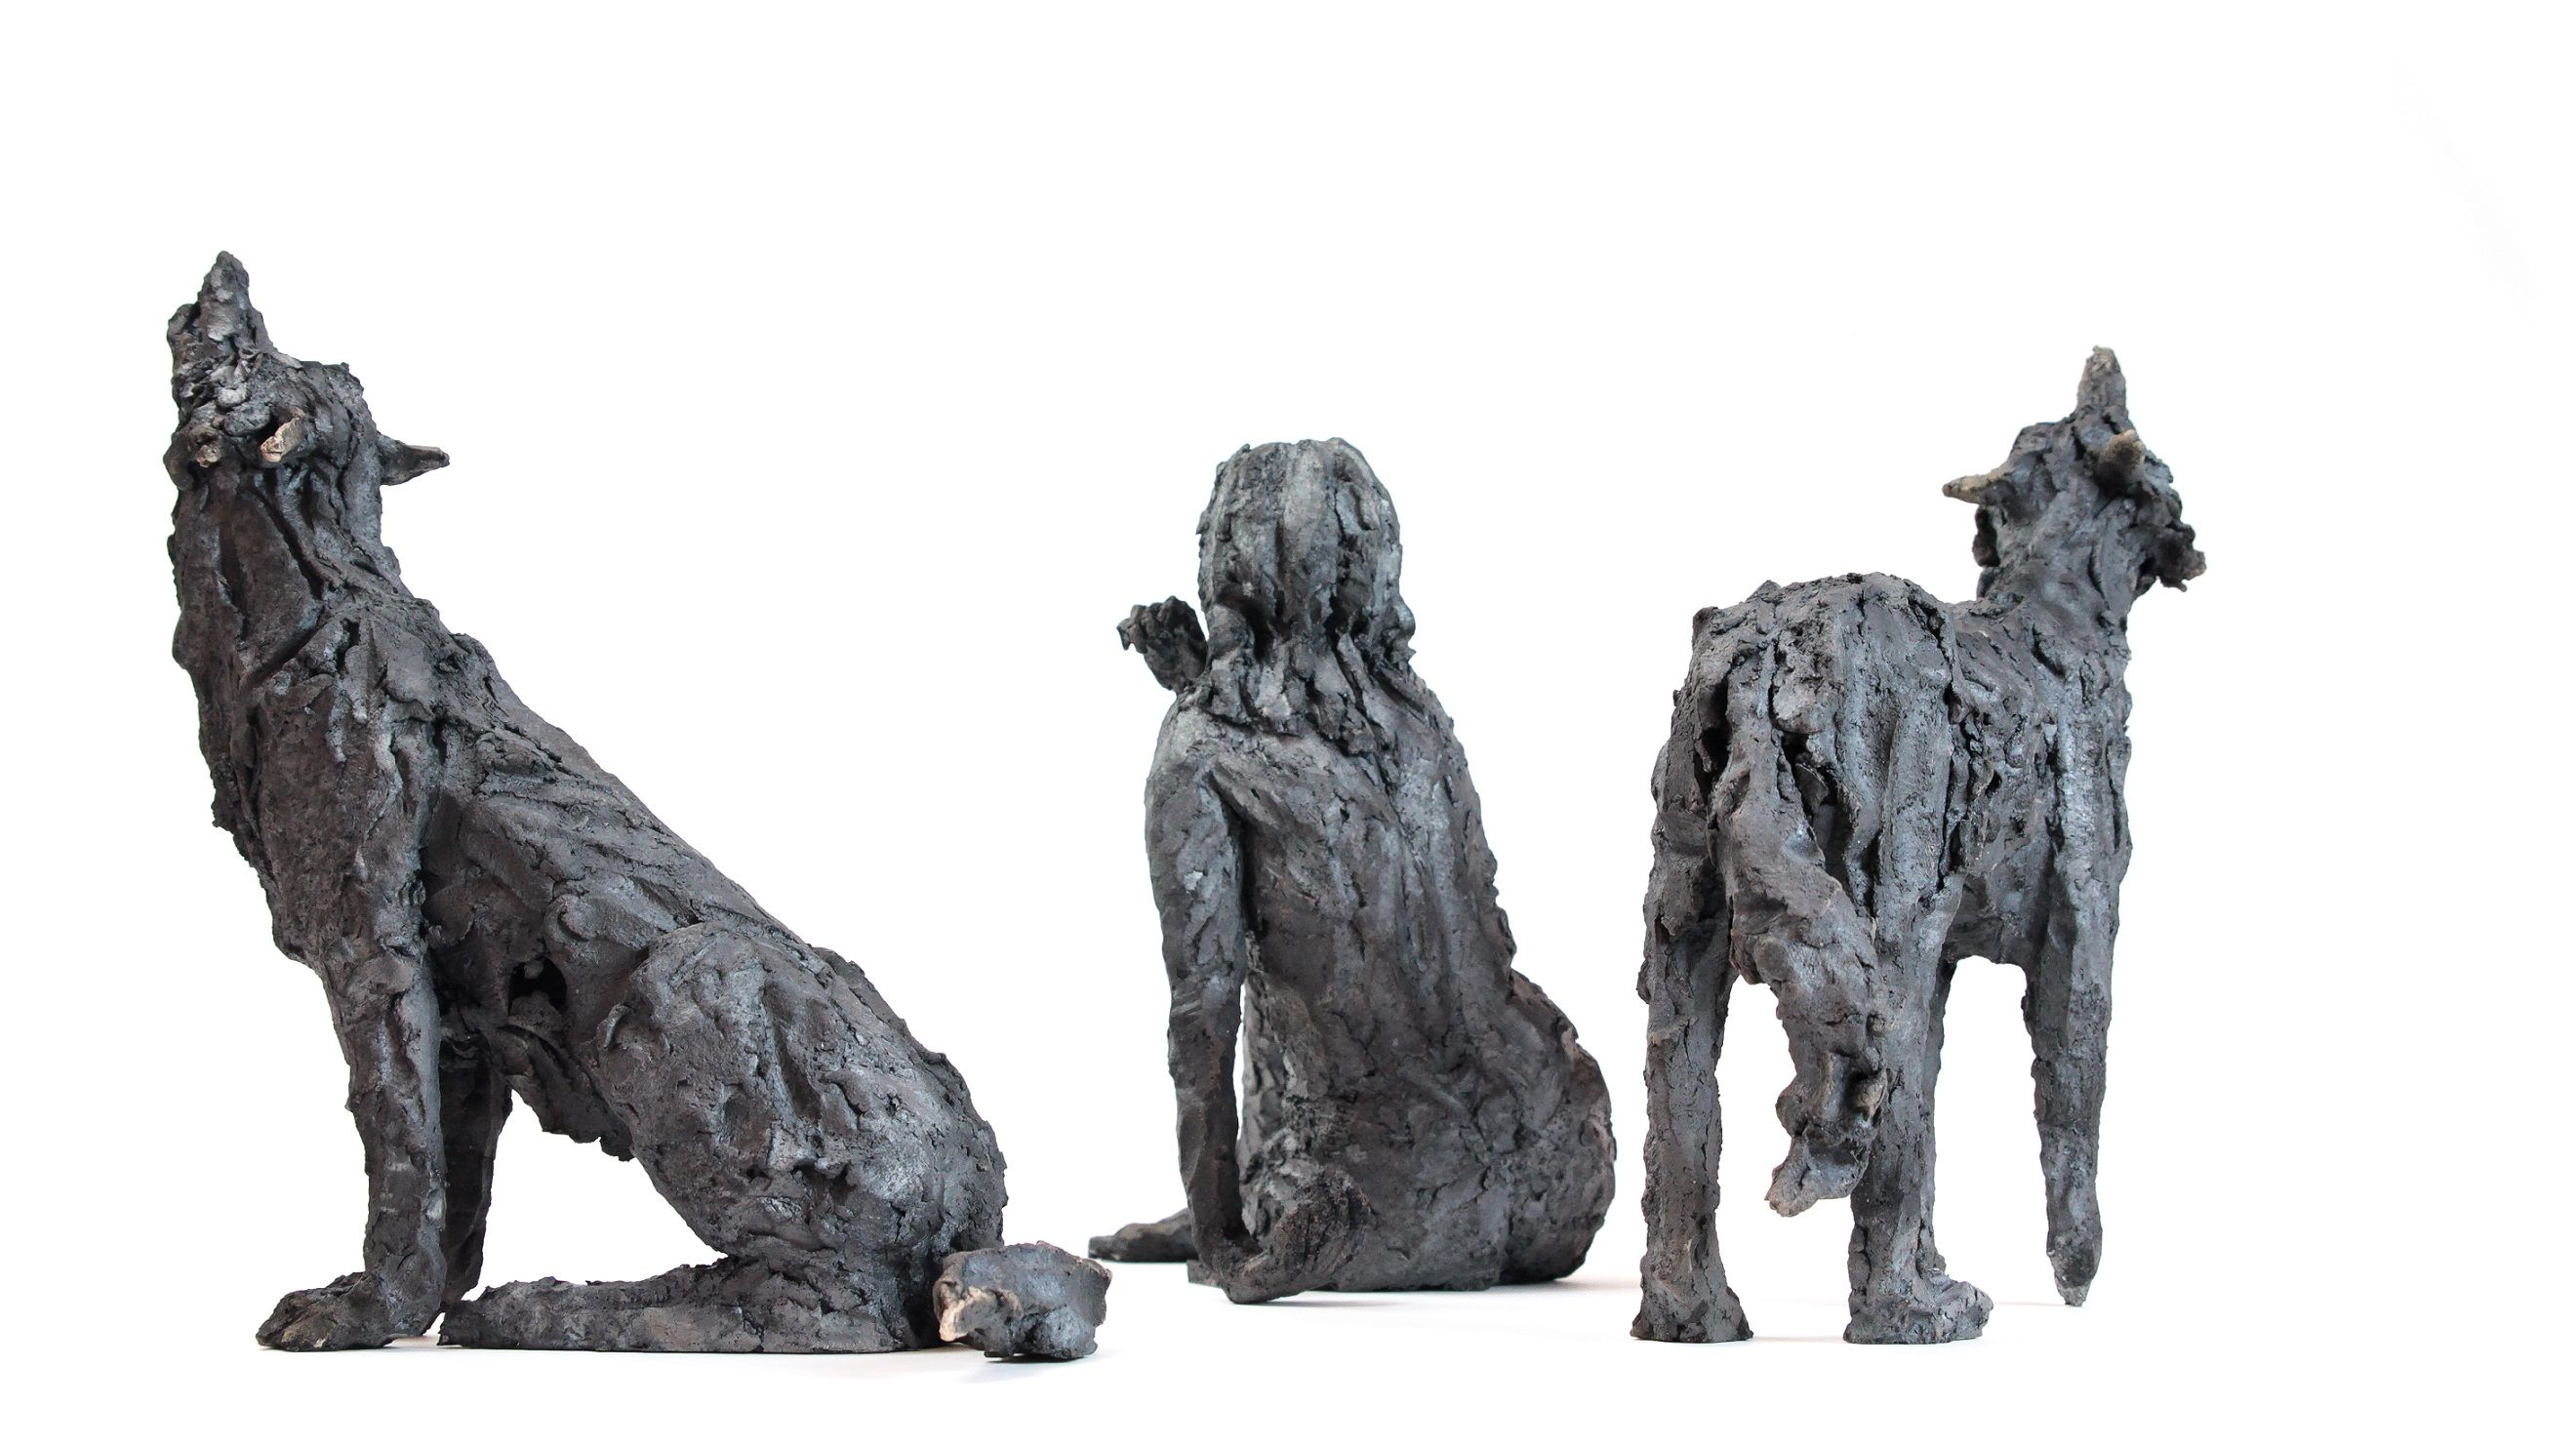 Wolf Pack,Cécile Raynal,Sculpture, detail 2